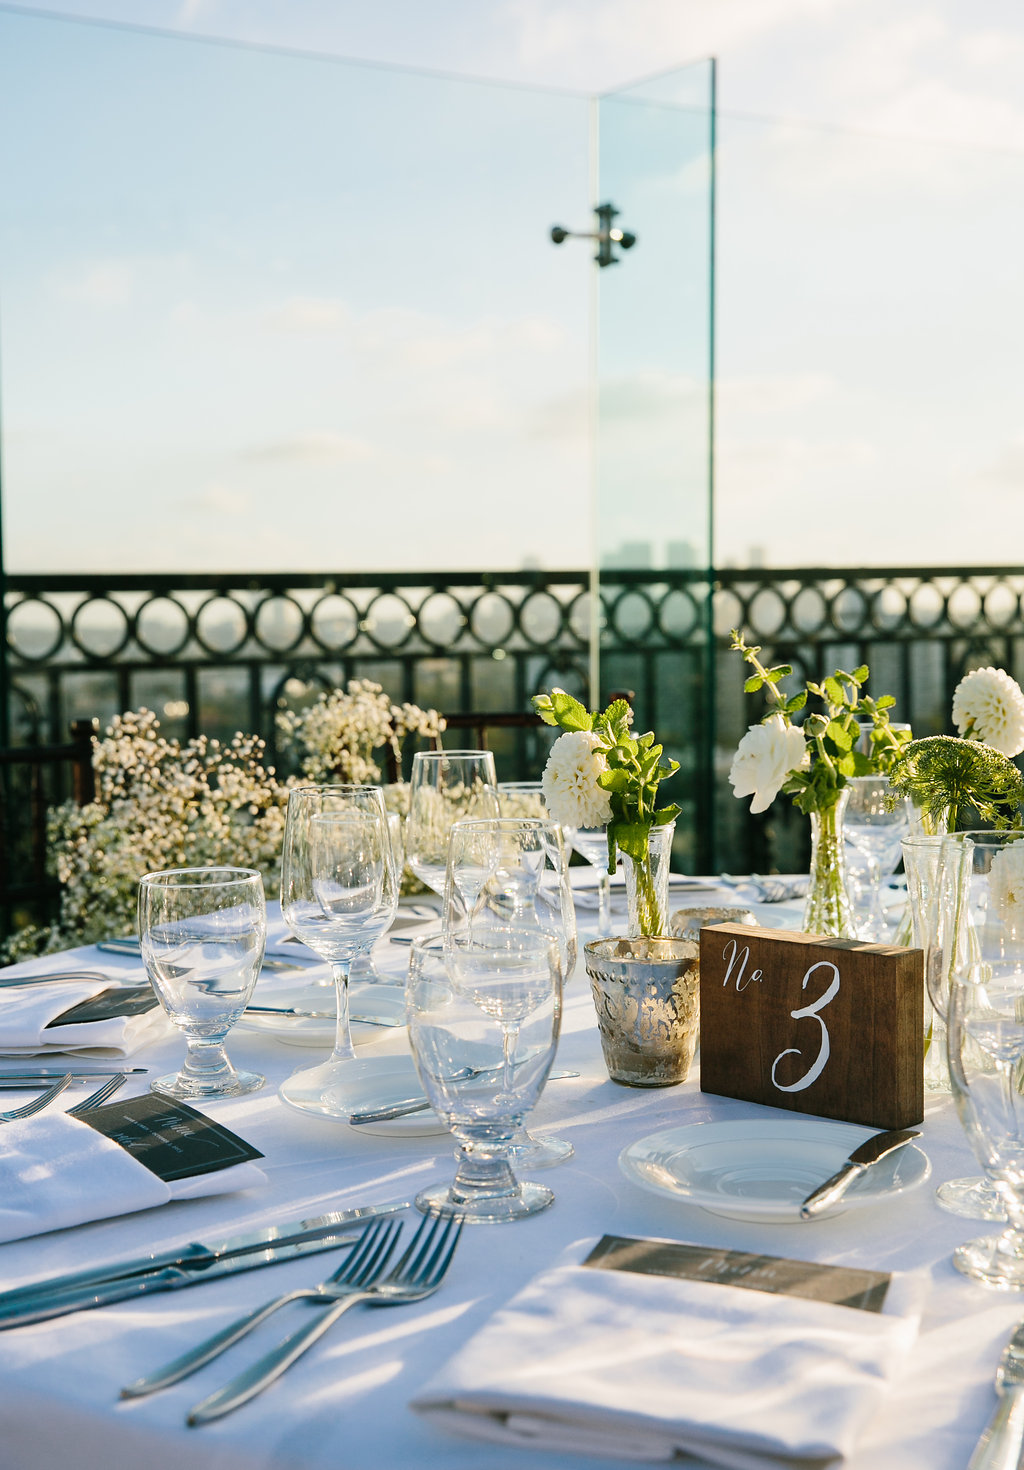 London West Hollywood Rooftop Reception